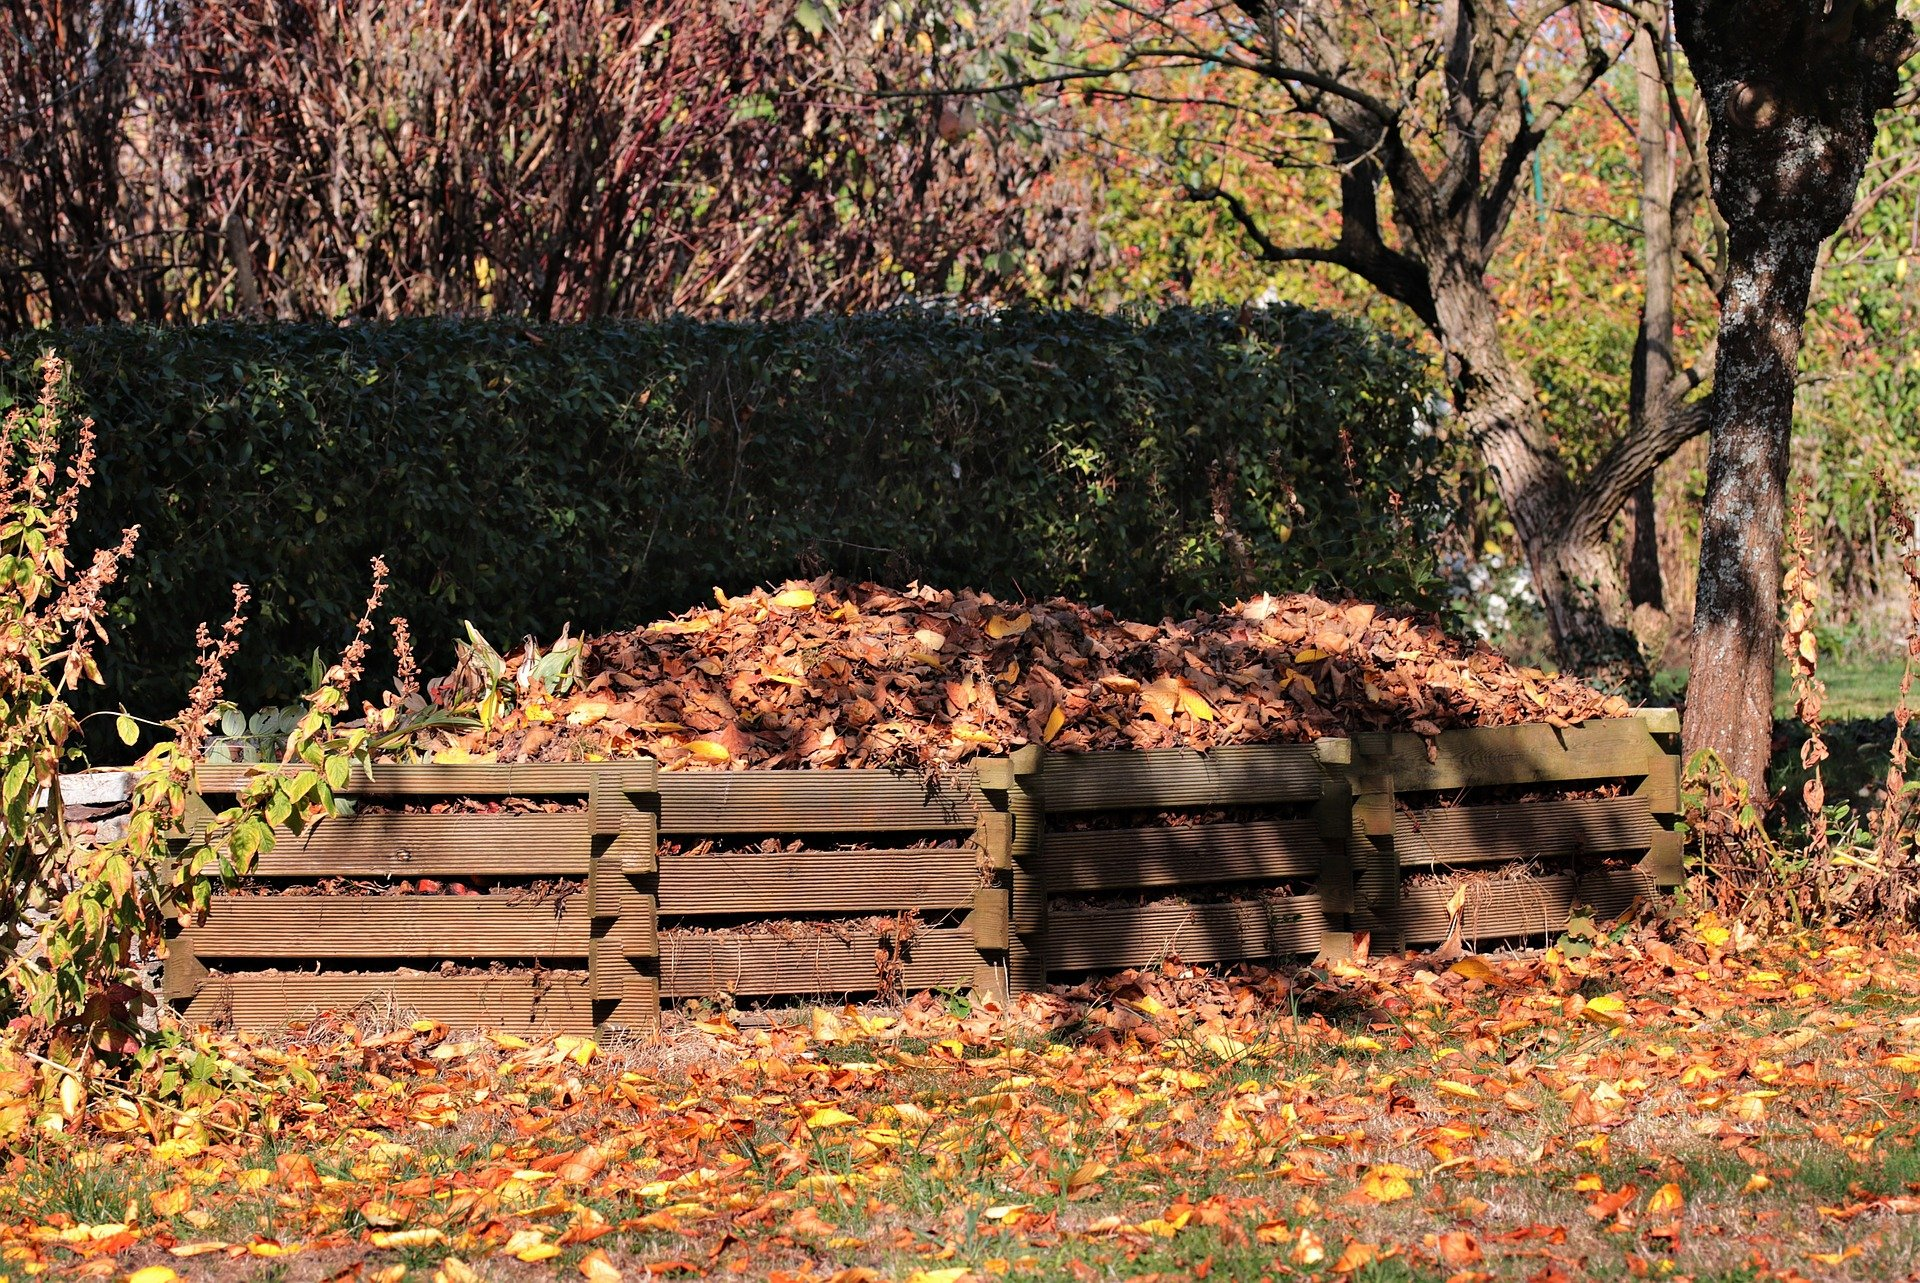 The Compost Story: Amazing Composting Benefits, According to the Stars